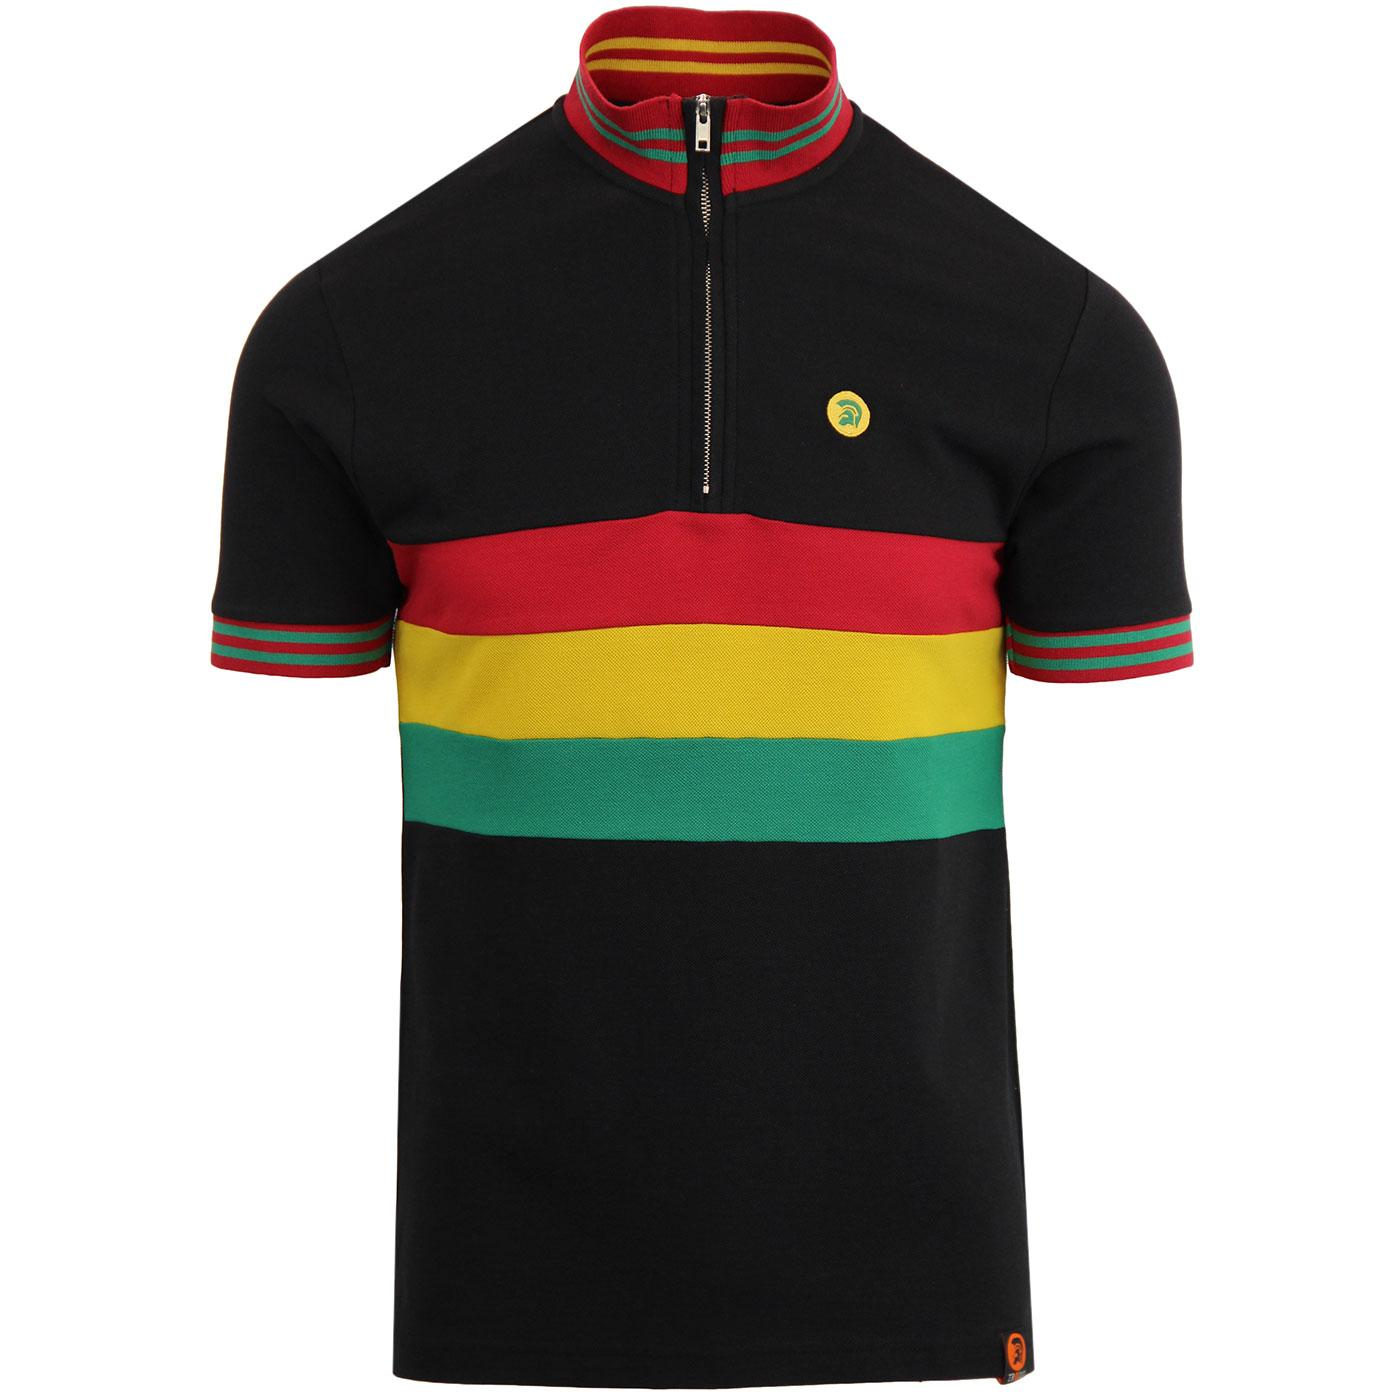 TROJAN RECORDS Retro Ska Rasta Stripe Cycling Top